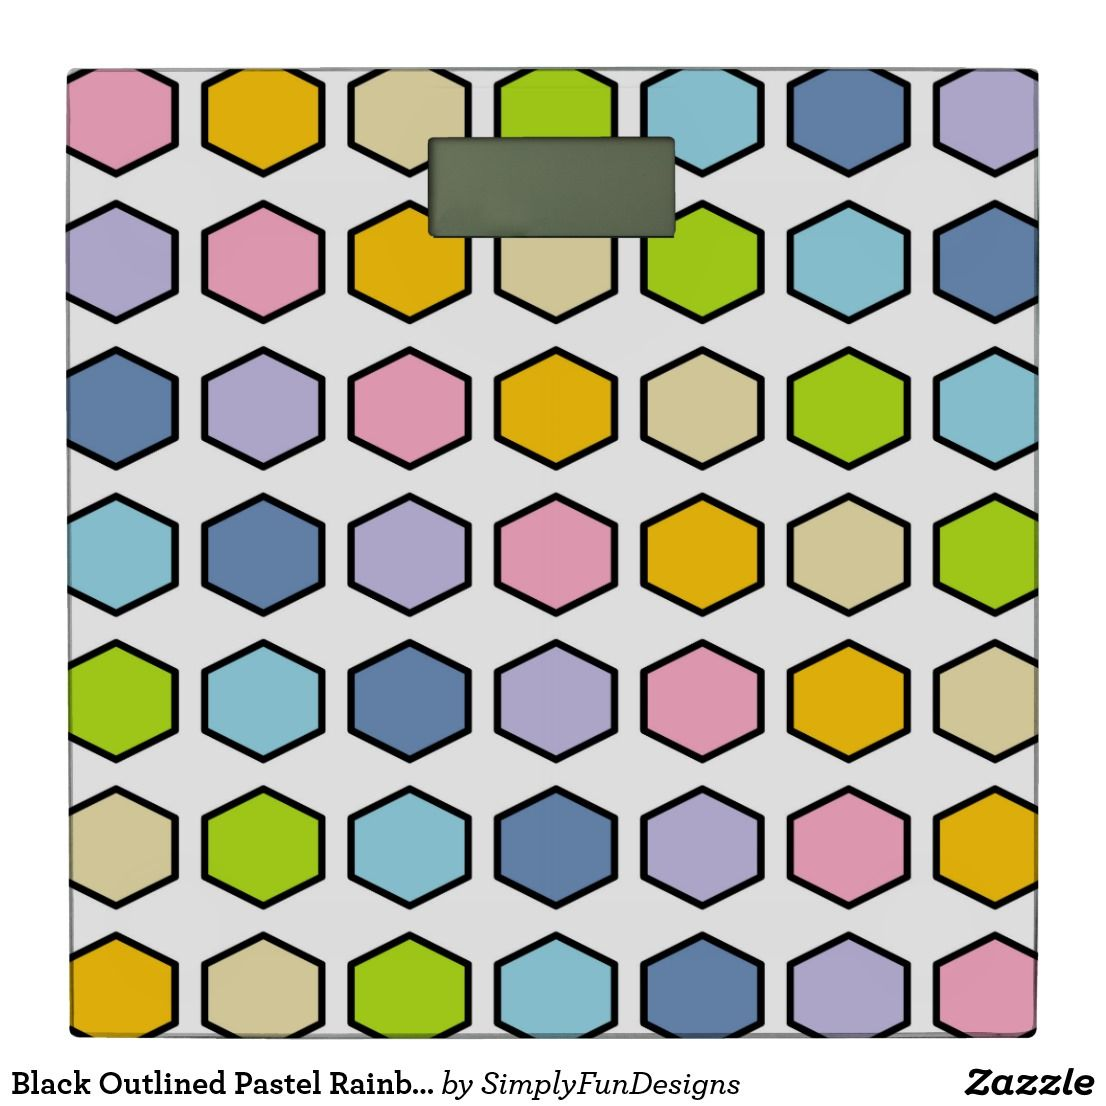 Black Outlined Pastel Rainbow Hexagons Bathroom Scale #bathroomscale #weightloss #scale #bathroom #homedecor